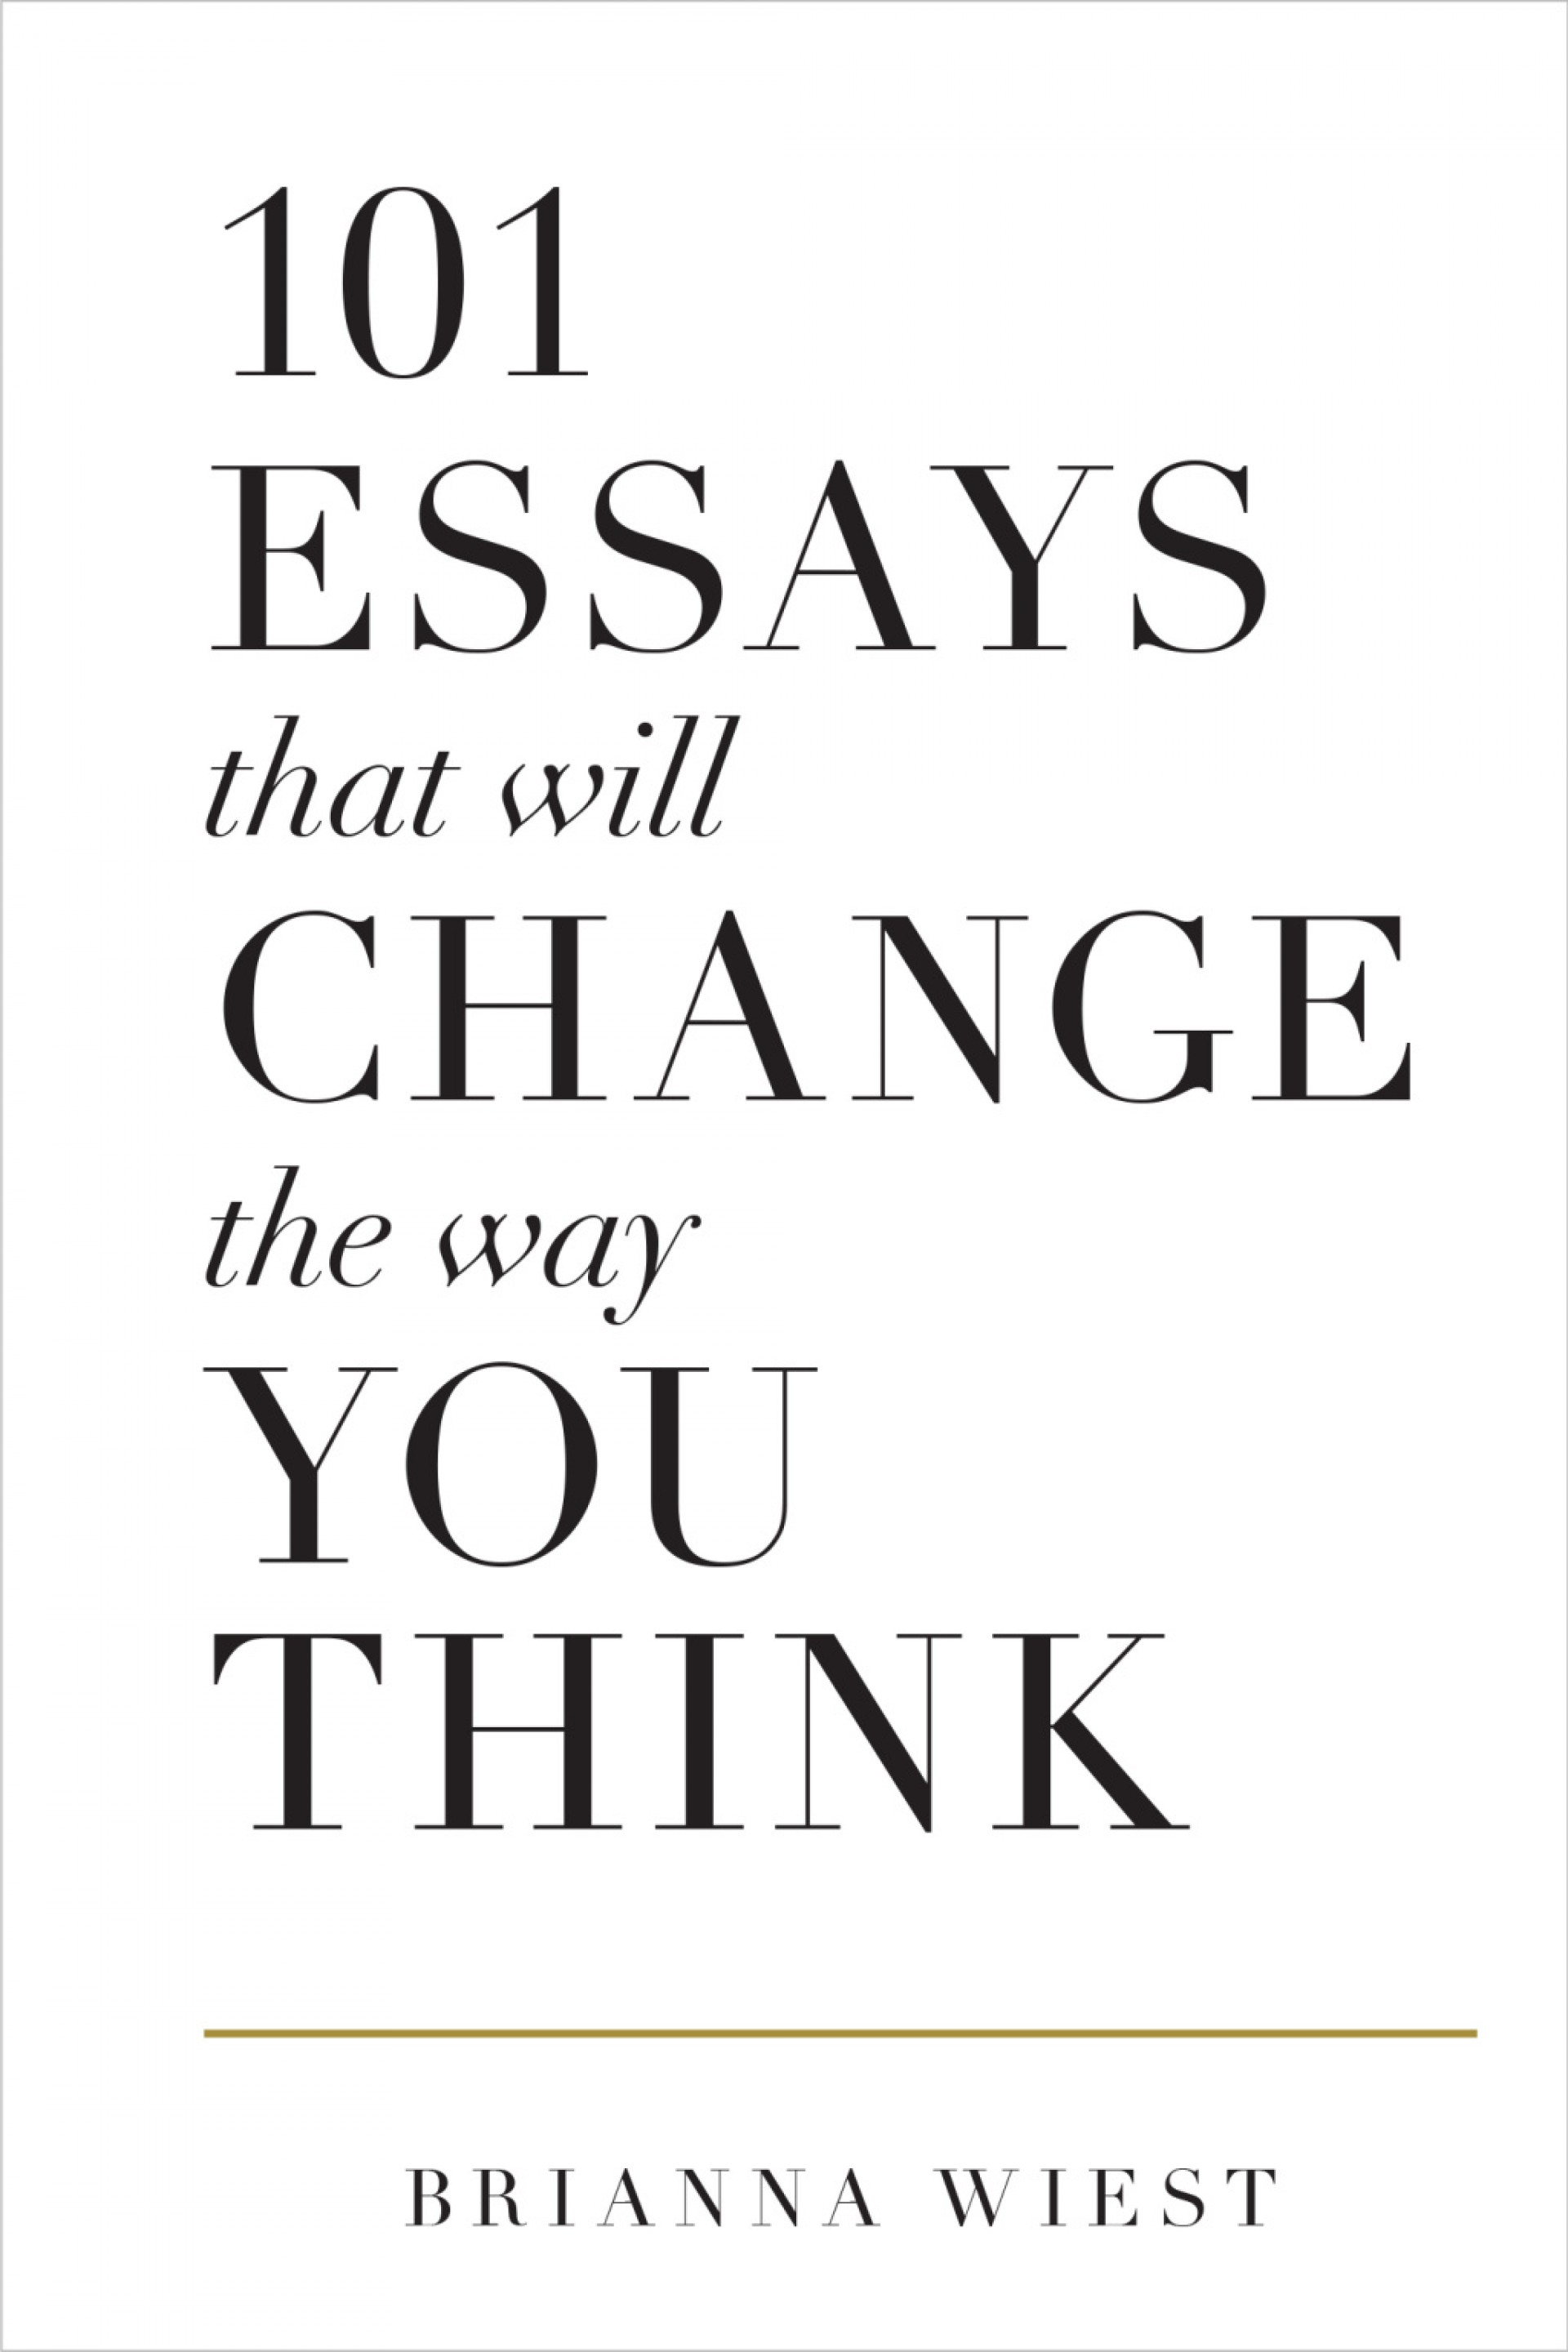 002 Essays That Will Change The Way You Think Essay Example Book Cover 1400x210015resize10241536quality95stripallcrop1 Unusual 101 Depository Barnes And Noble Review 1920